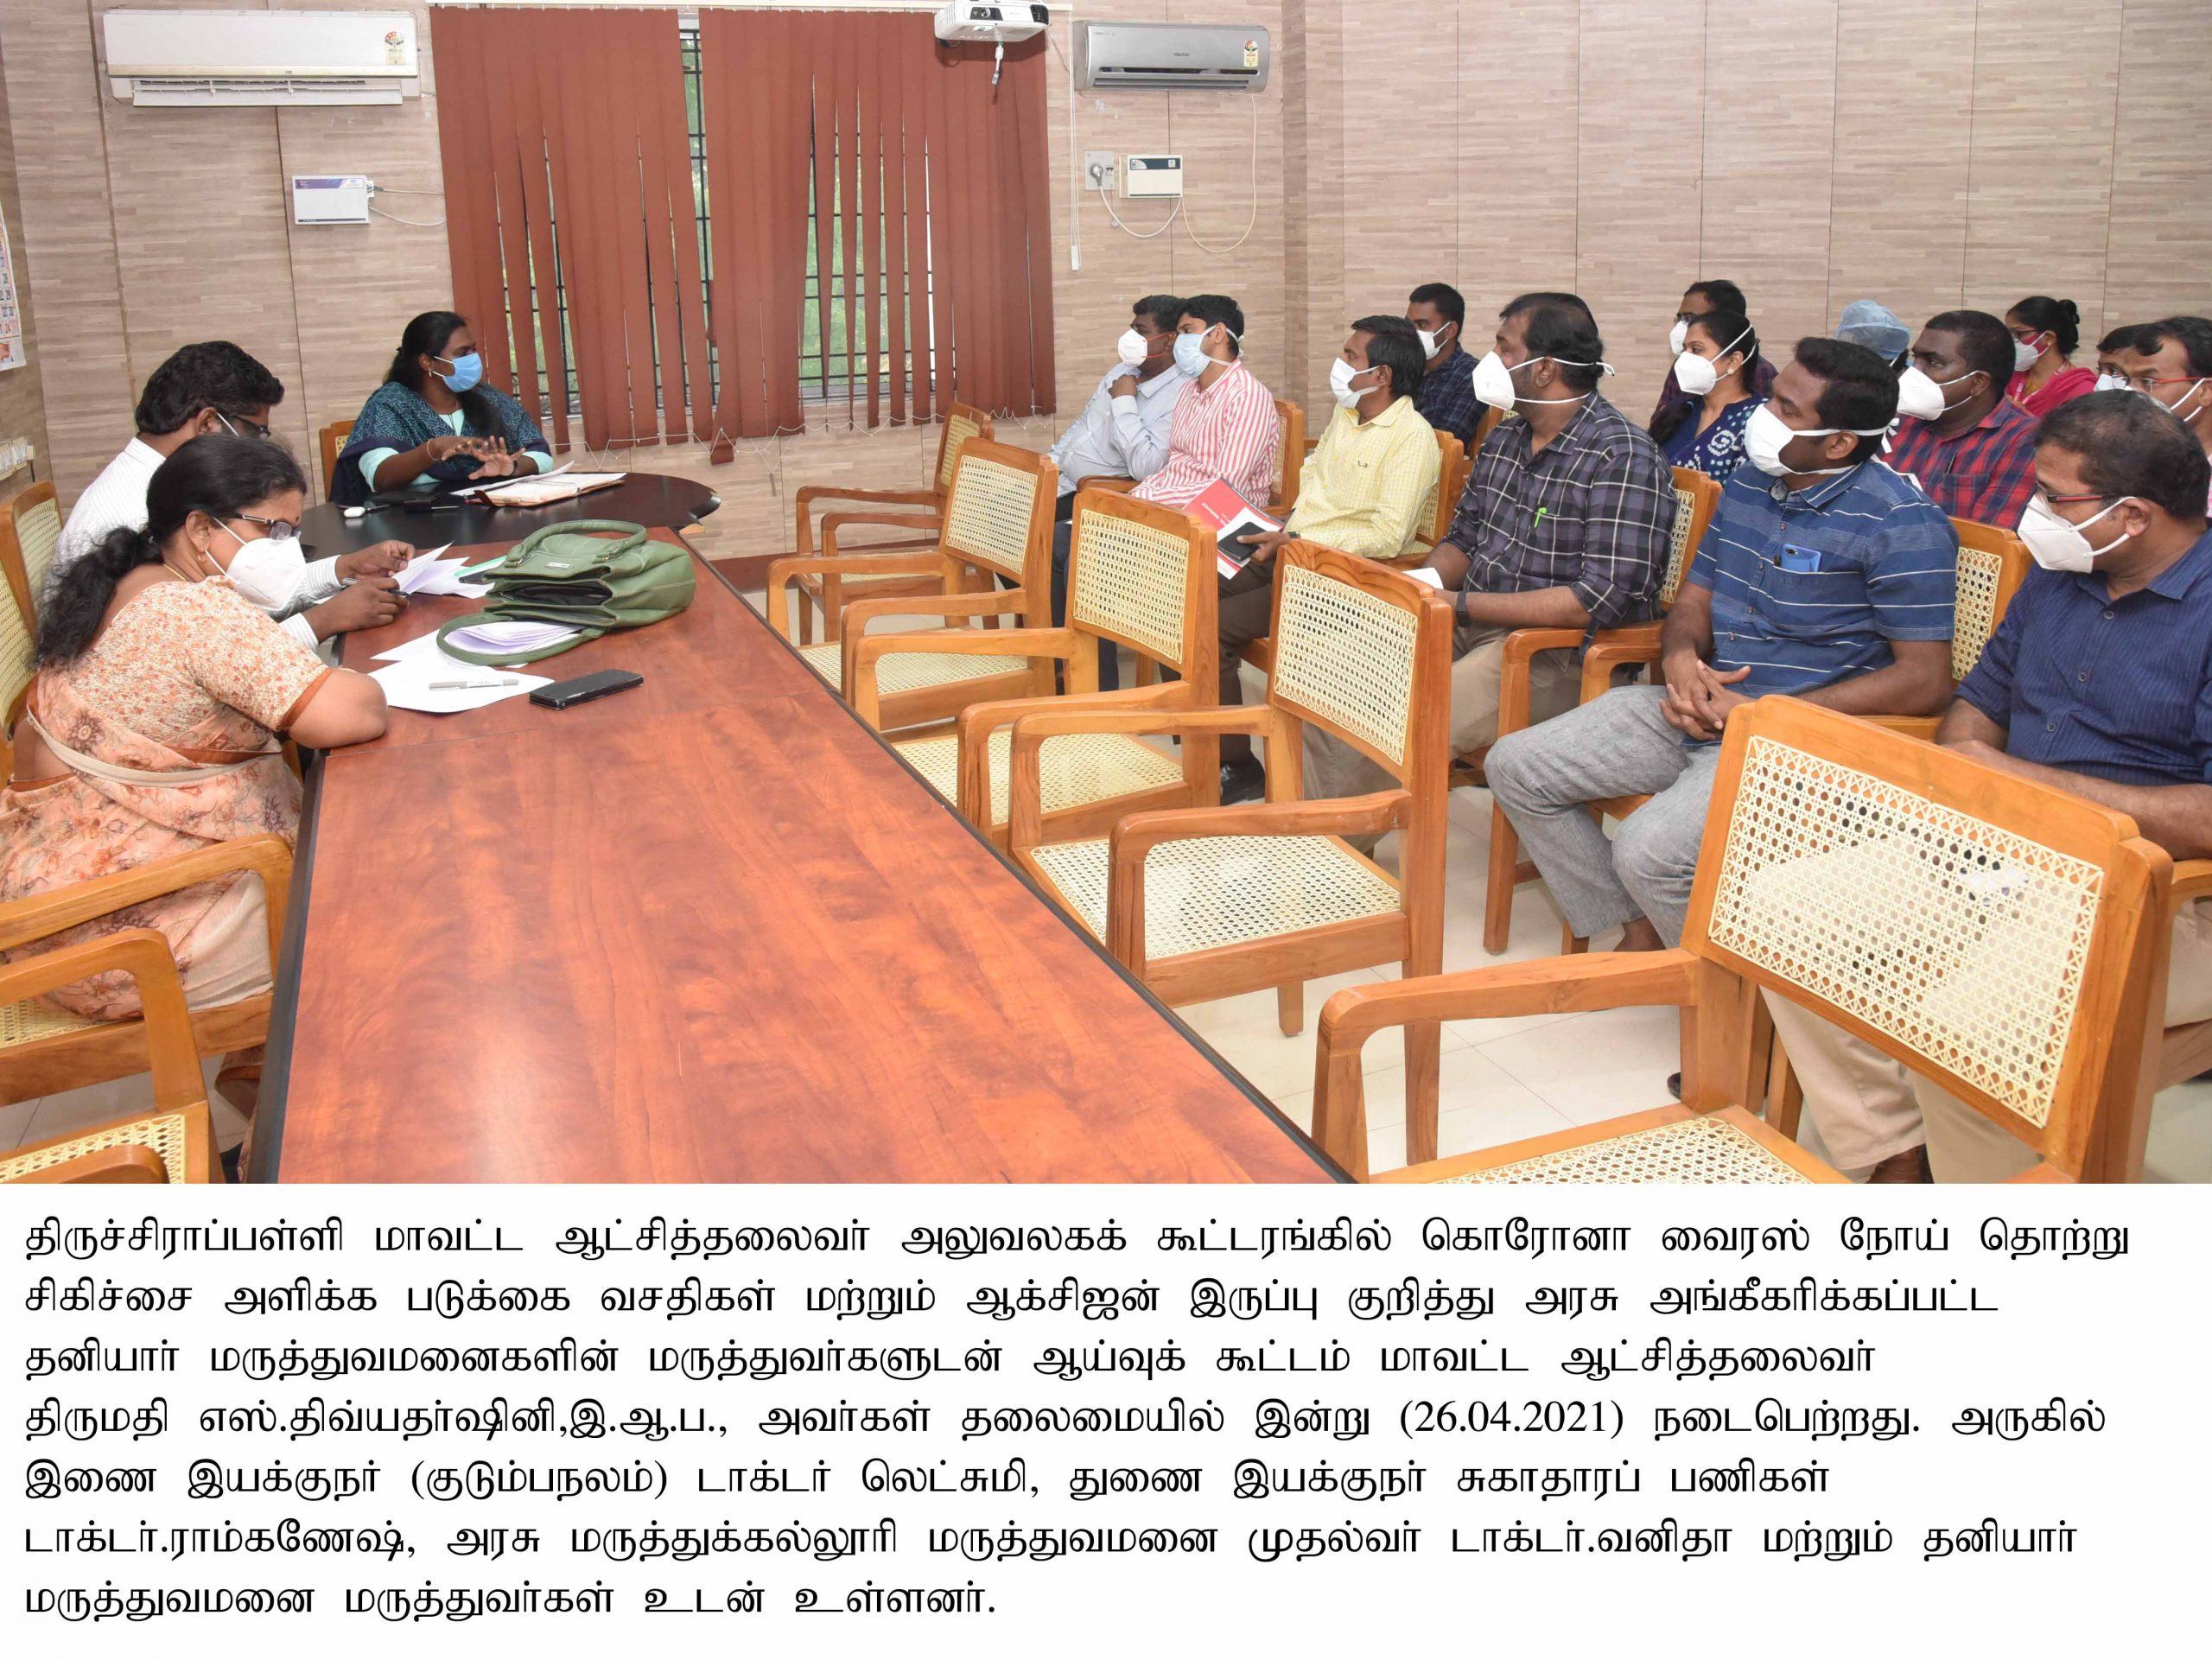 Meeting with the Doctors of Private Hospital about Covid-19 was held Under the Chairmanship of the District Collector on 26-04-2021